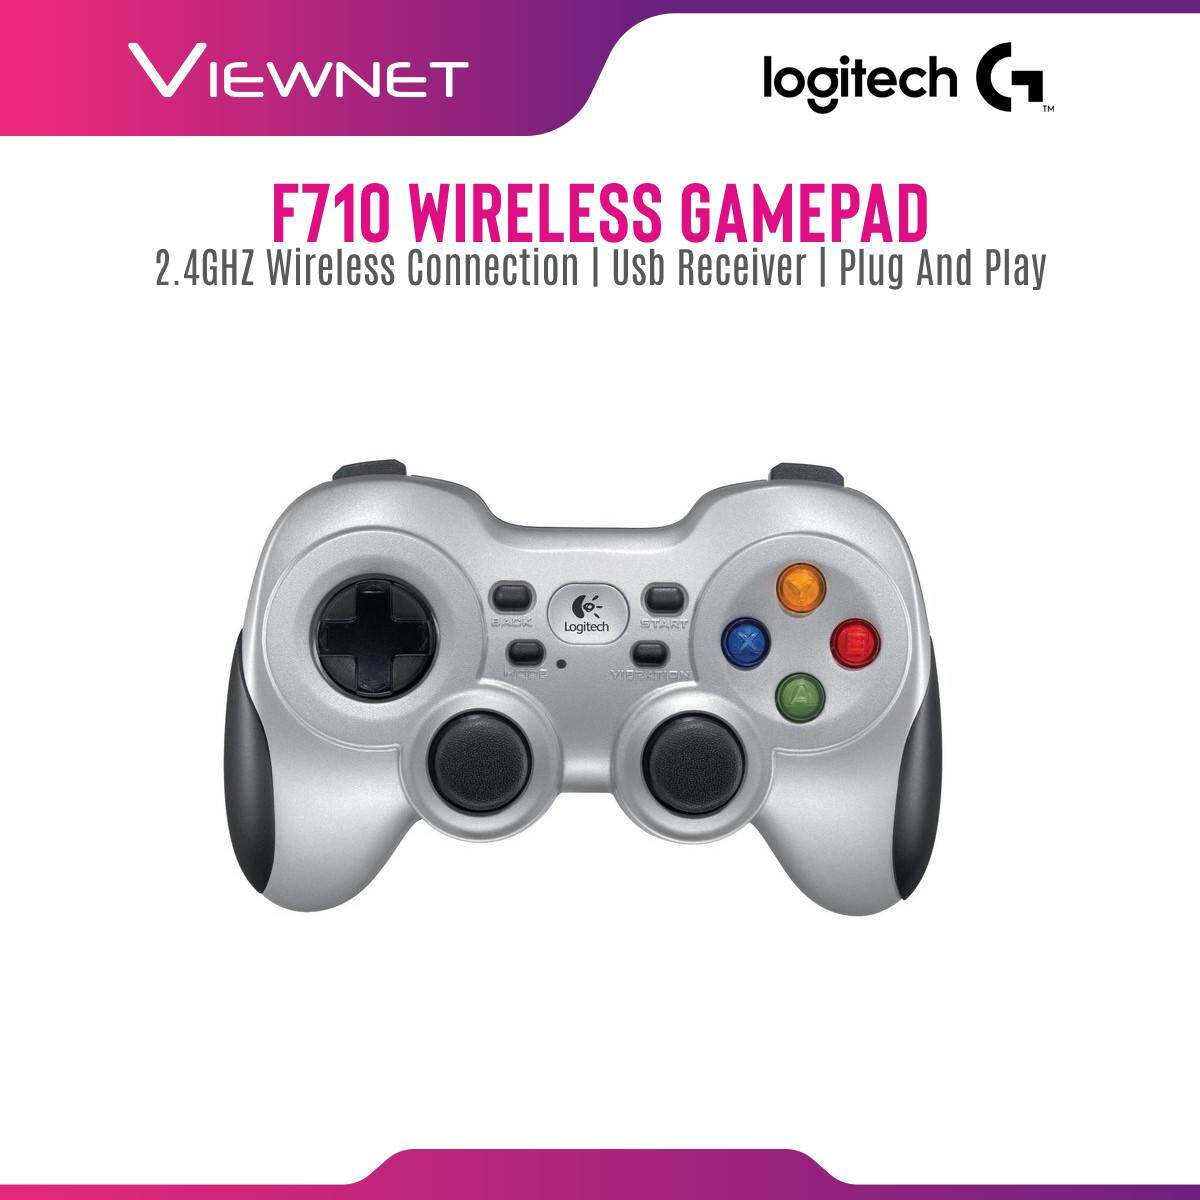 Logitech F710 Wireless Gamepad with 2.4GHz Wireless Connection, Dual Vibration Feedback Motors, Exclusive 4-Switch D-Pad, Plug and Play